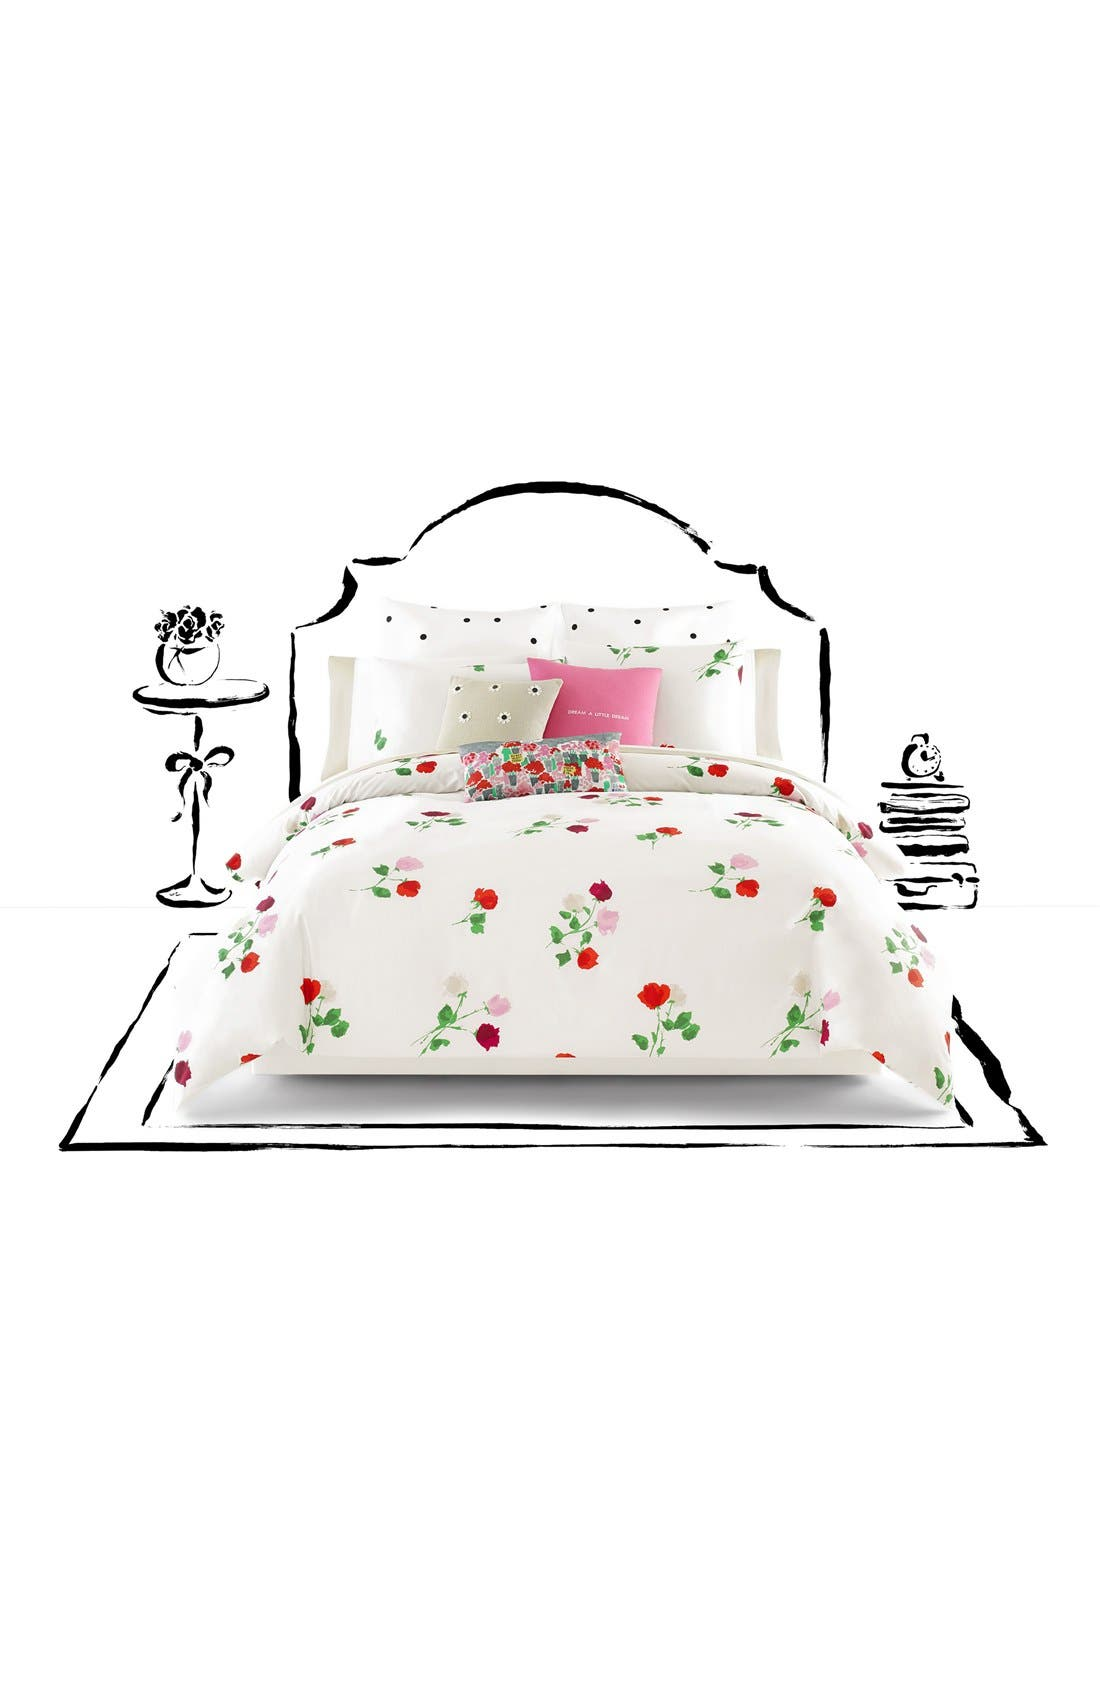 kate spade new york 'willow court' comforter set